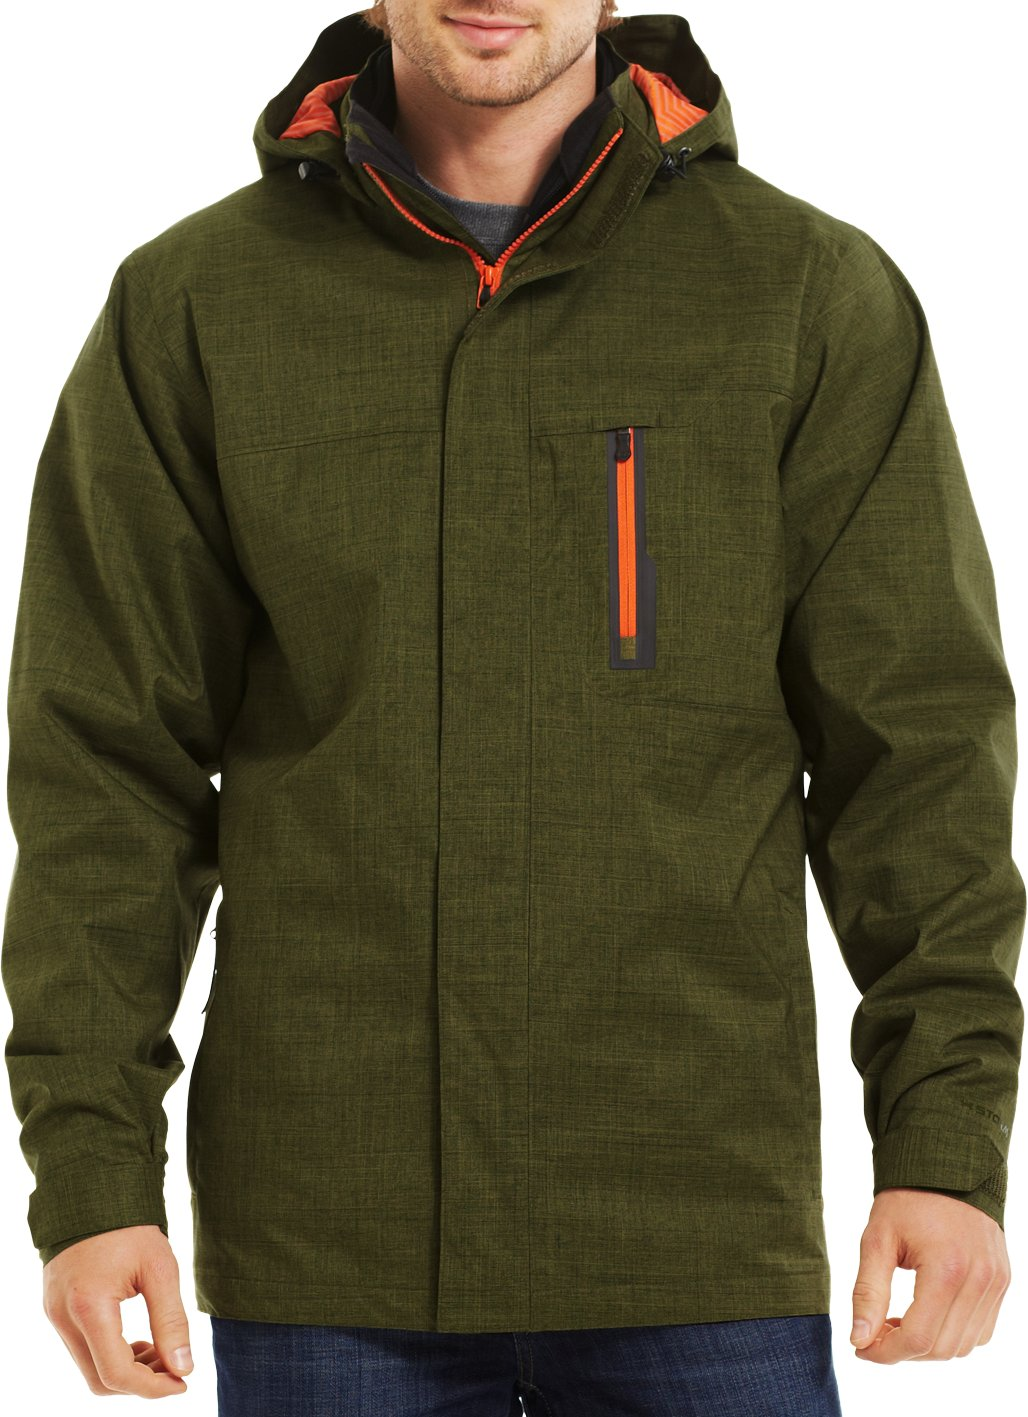 Men's ColdGear® Infrared Furley 3-in-1 Jacket, GREENHEAD, zoomed image